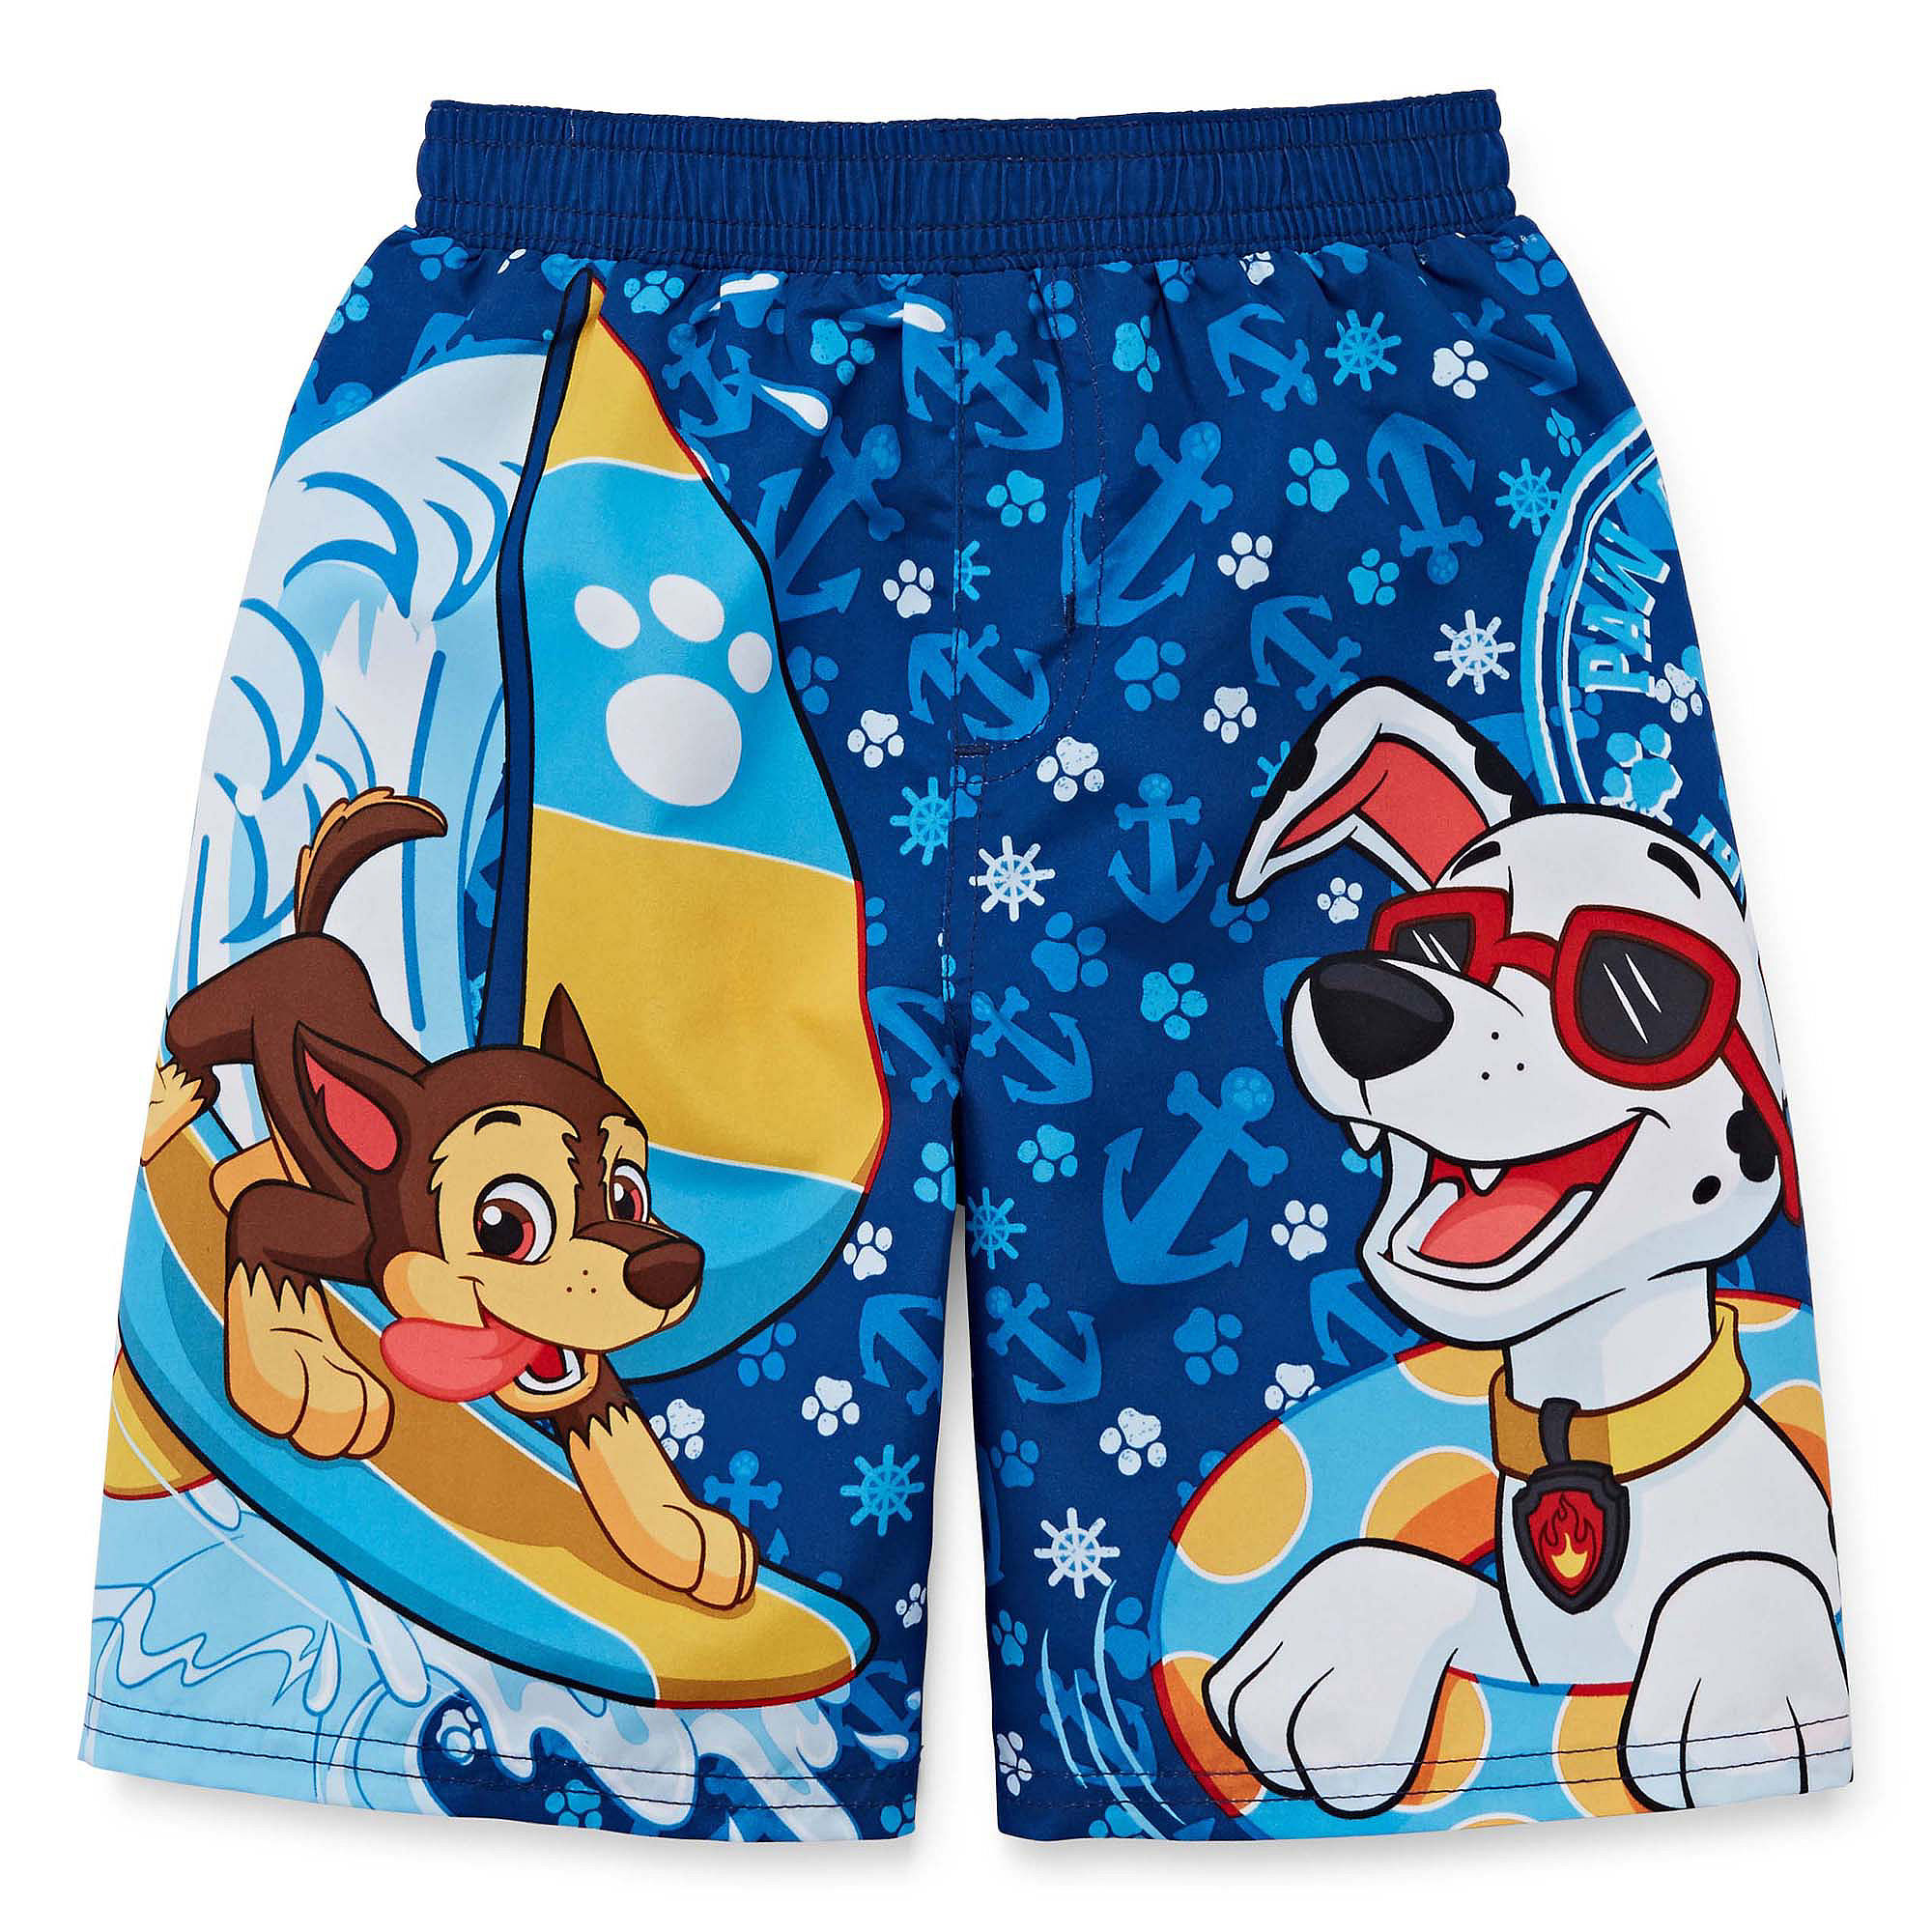 fbd4723a55e9a UPC 704386757922 product image for Paw Patrol Swim Trunks - Toddler Boys  2t-5t